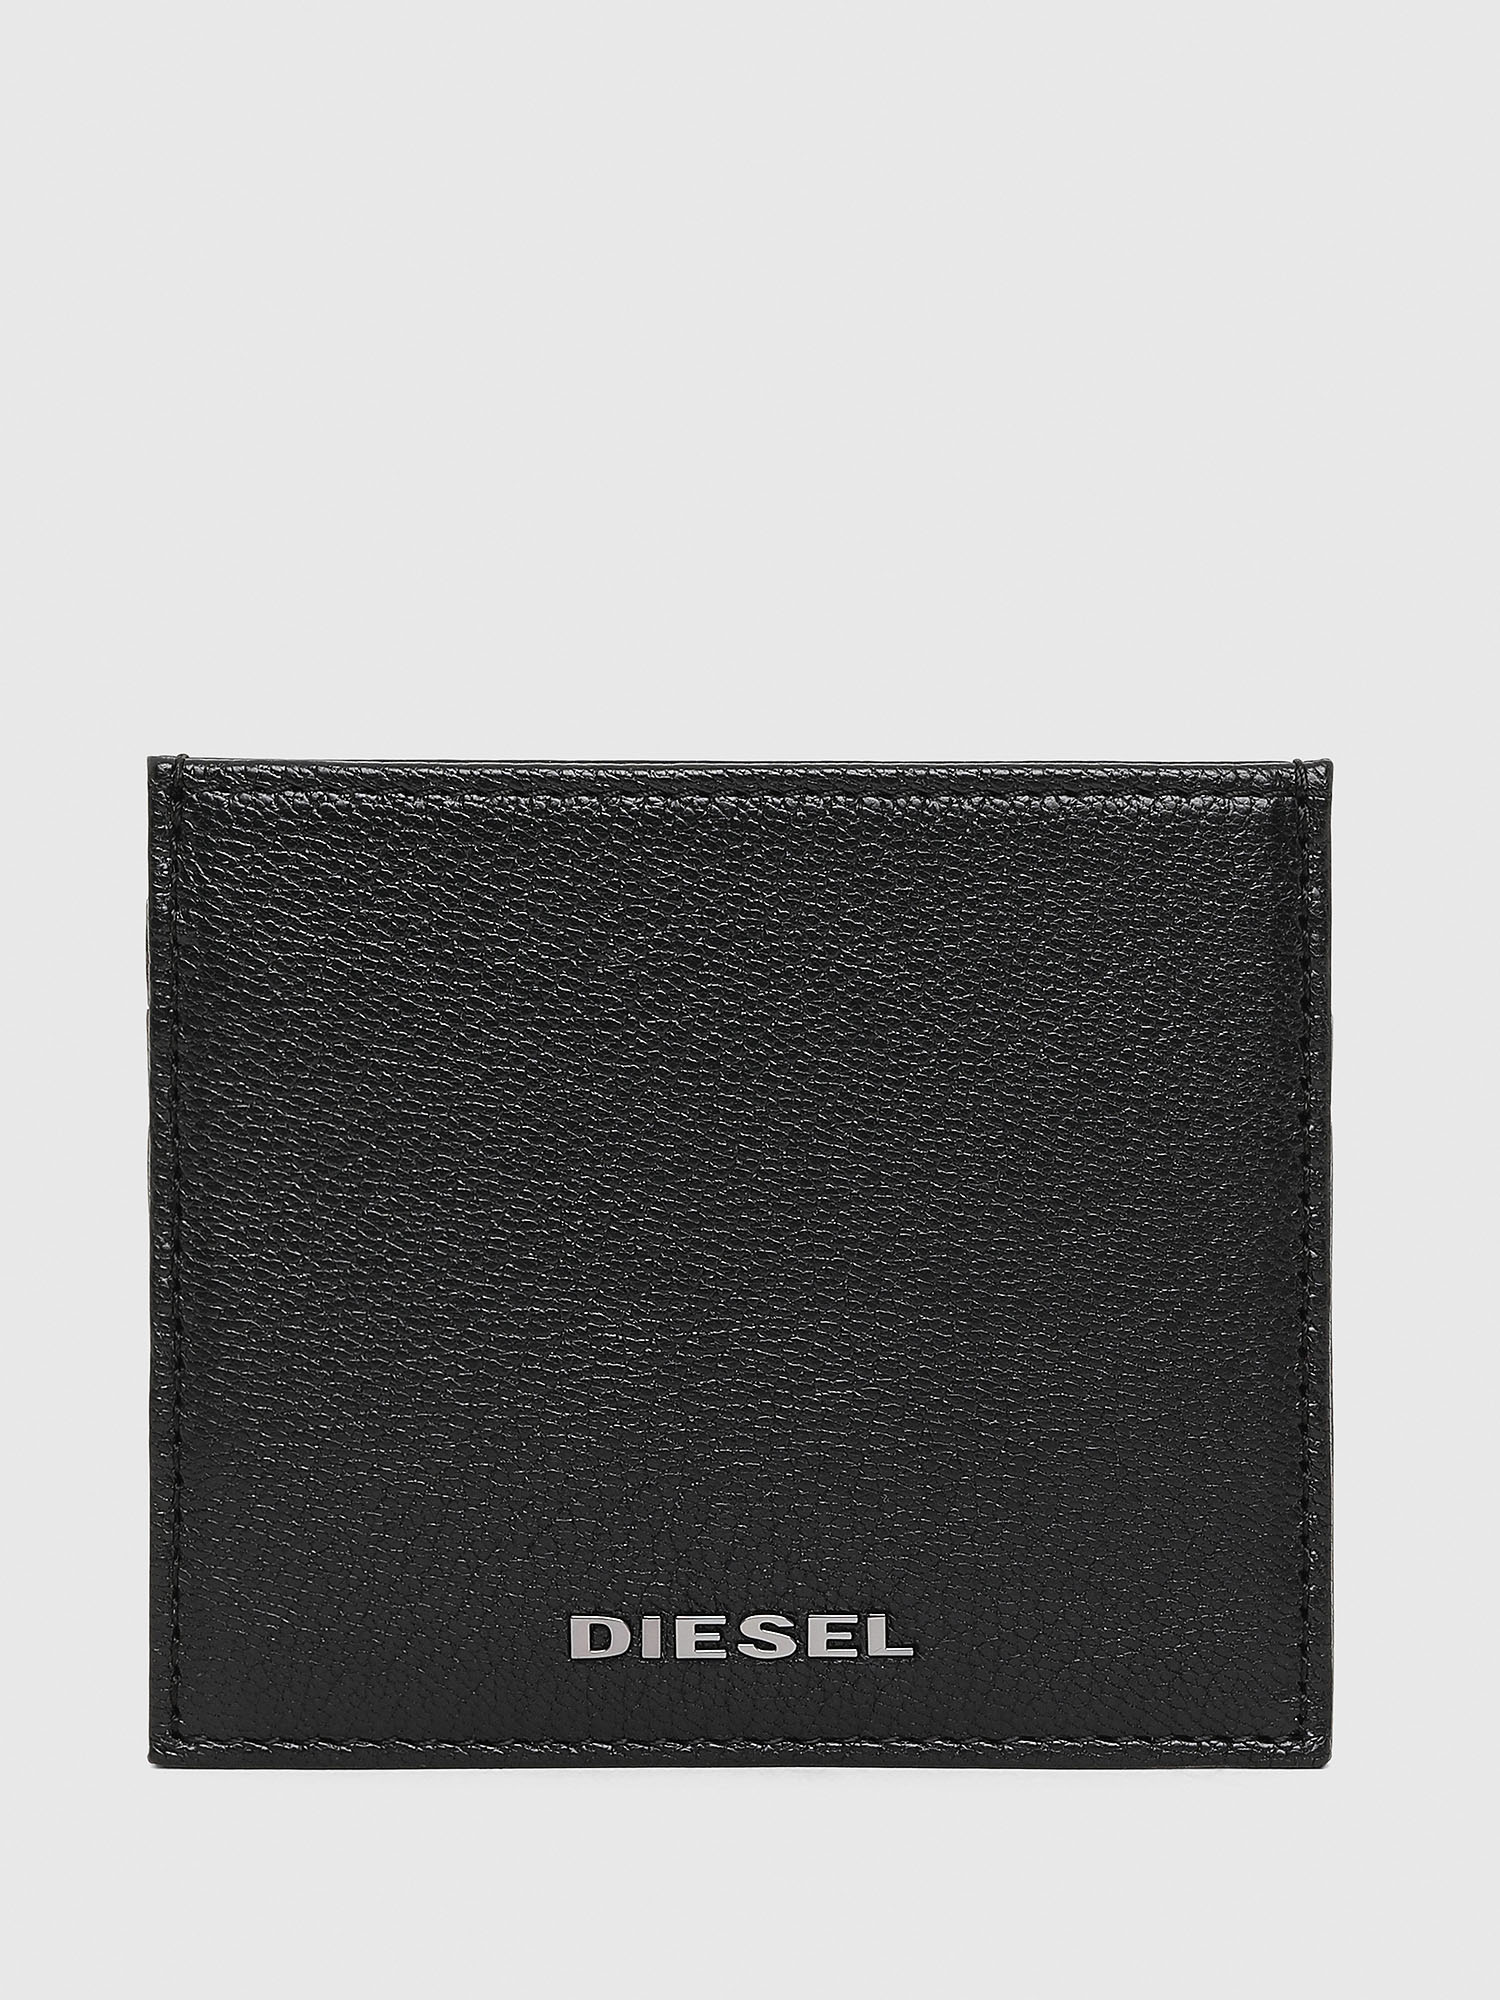 Diesel - JOHNAS,  - Card cases - Image 1